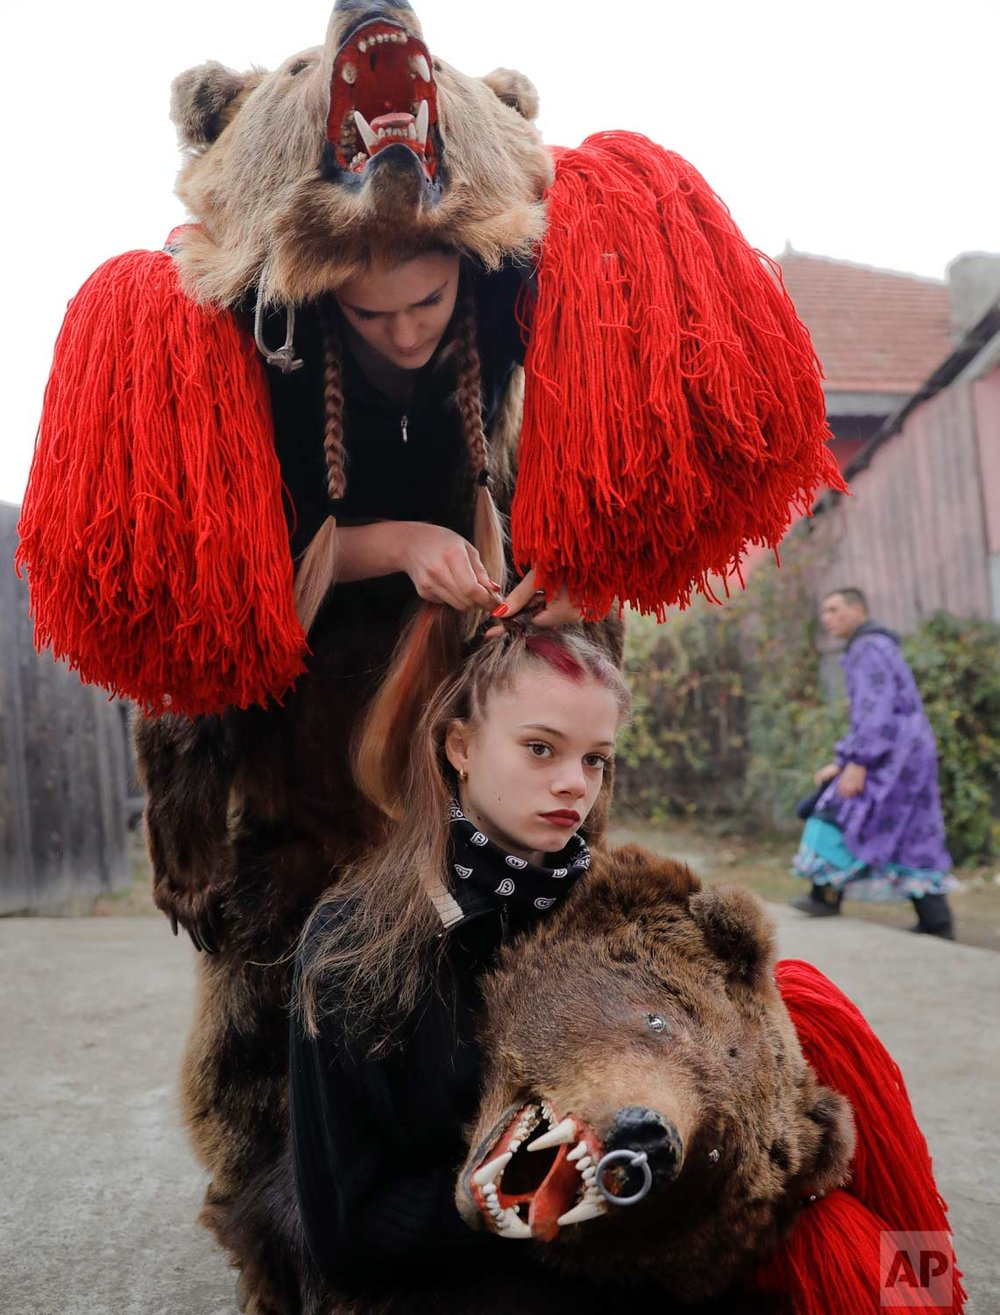 In this Saturday, Dec. 30, 2017, picture, Roxana Stan, top, braids Raluca Atrejei's hair as they get ready for an annual bear parade in Asau, Romania. (AP Photo/Vadim Ghirda)